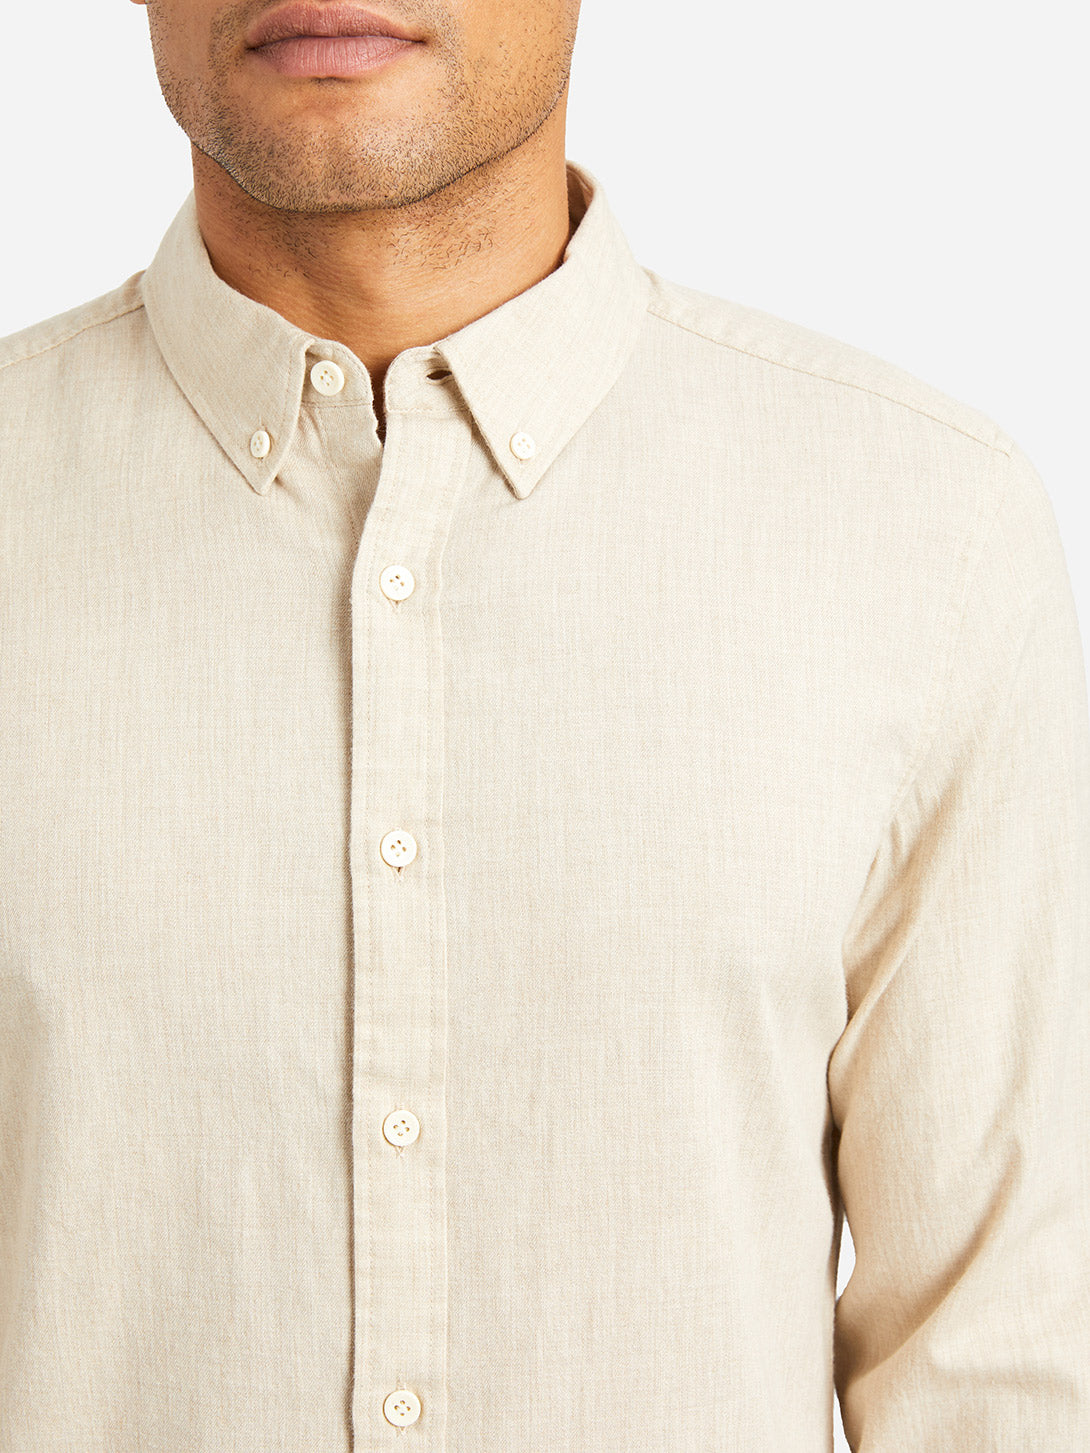 HEATHER BEIGE button down collar shirt fulton peached twill shirt beige heather